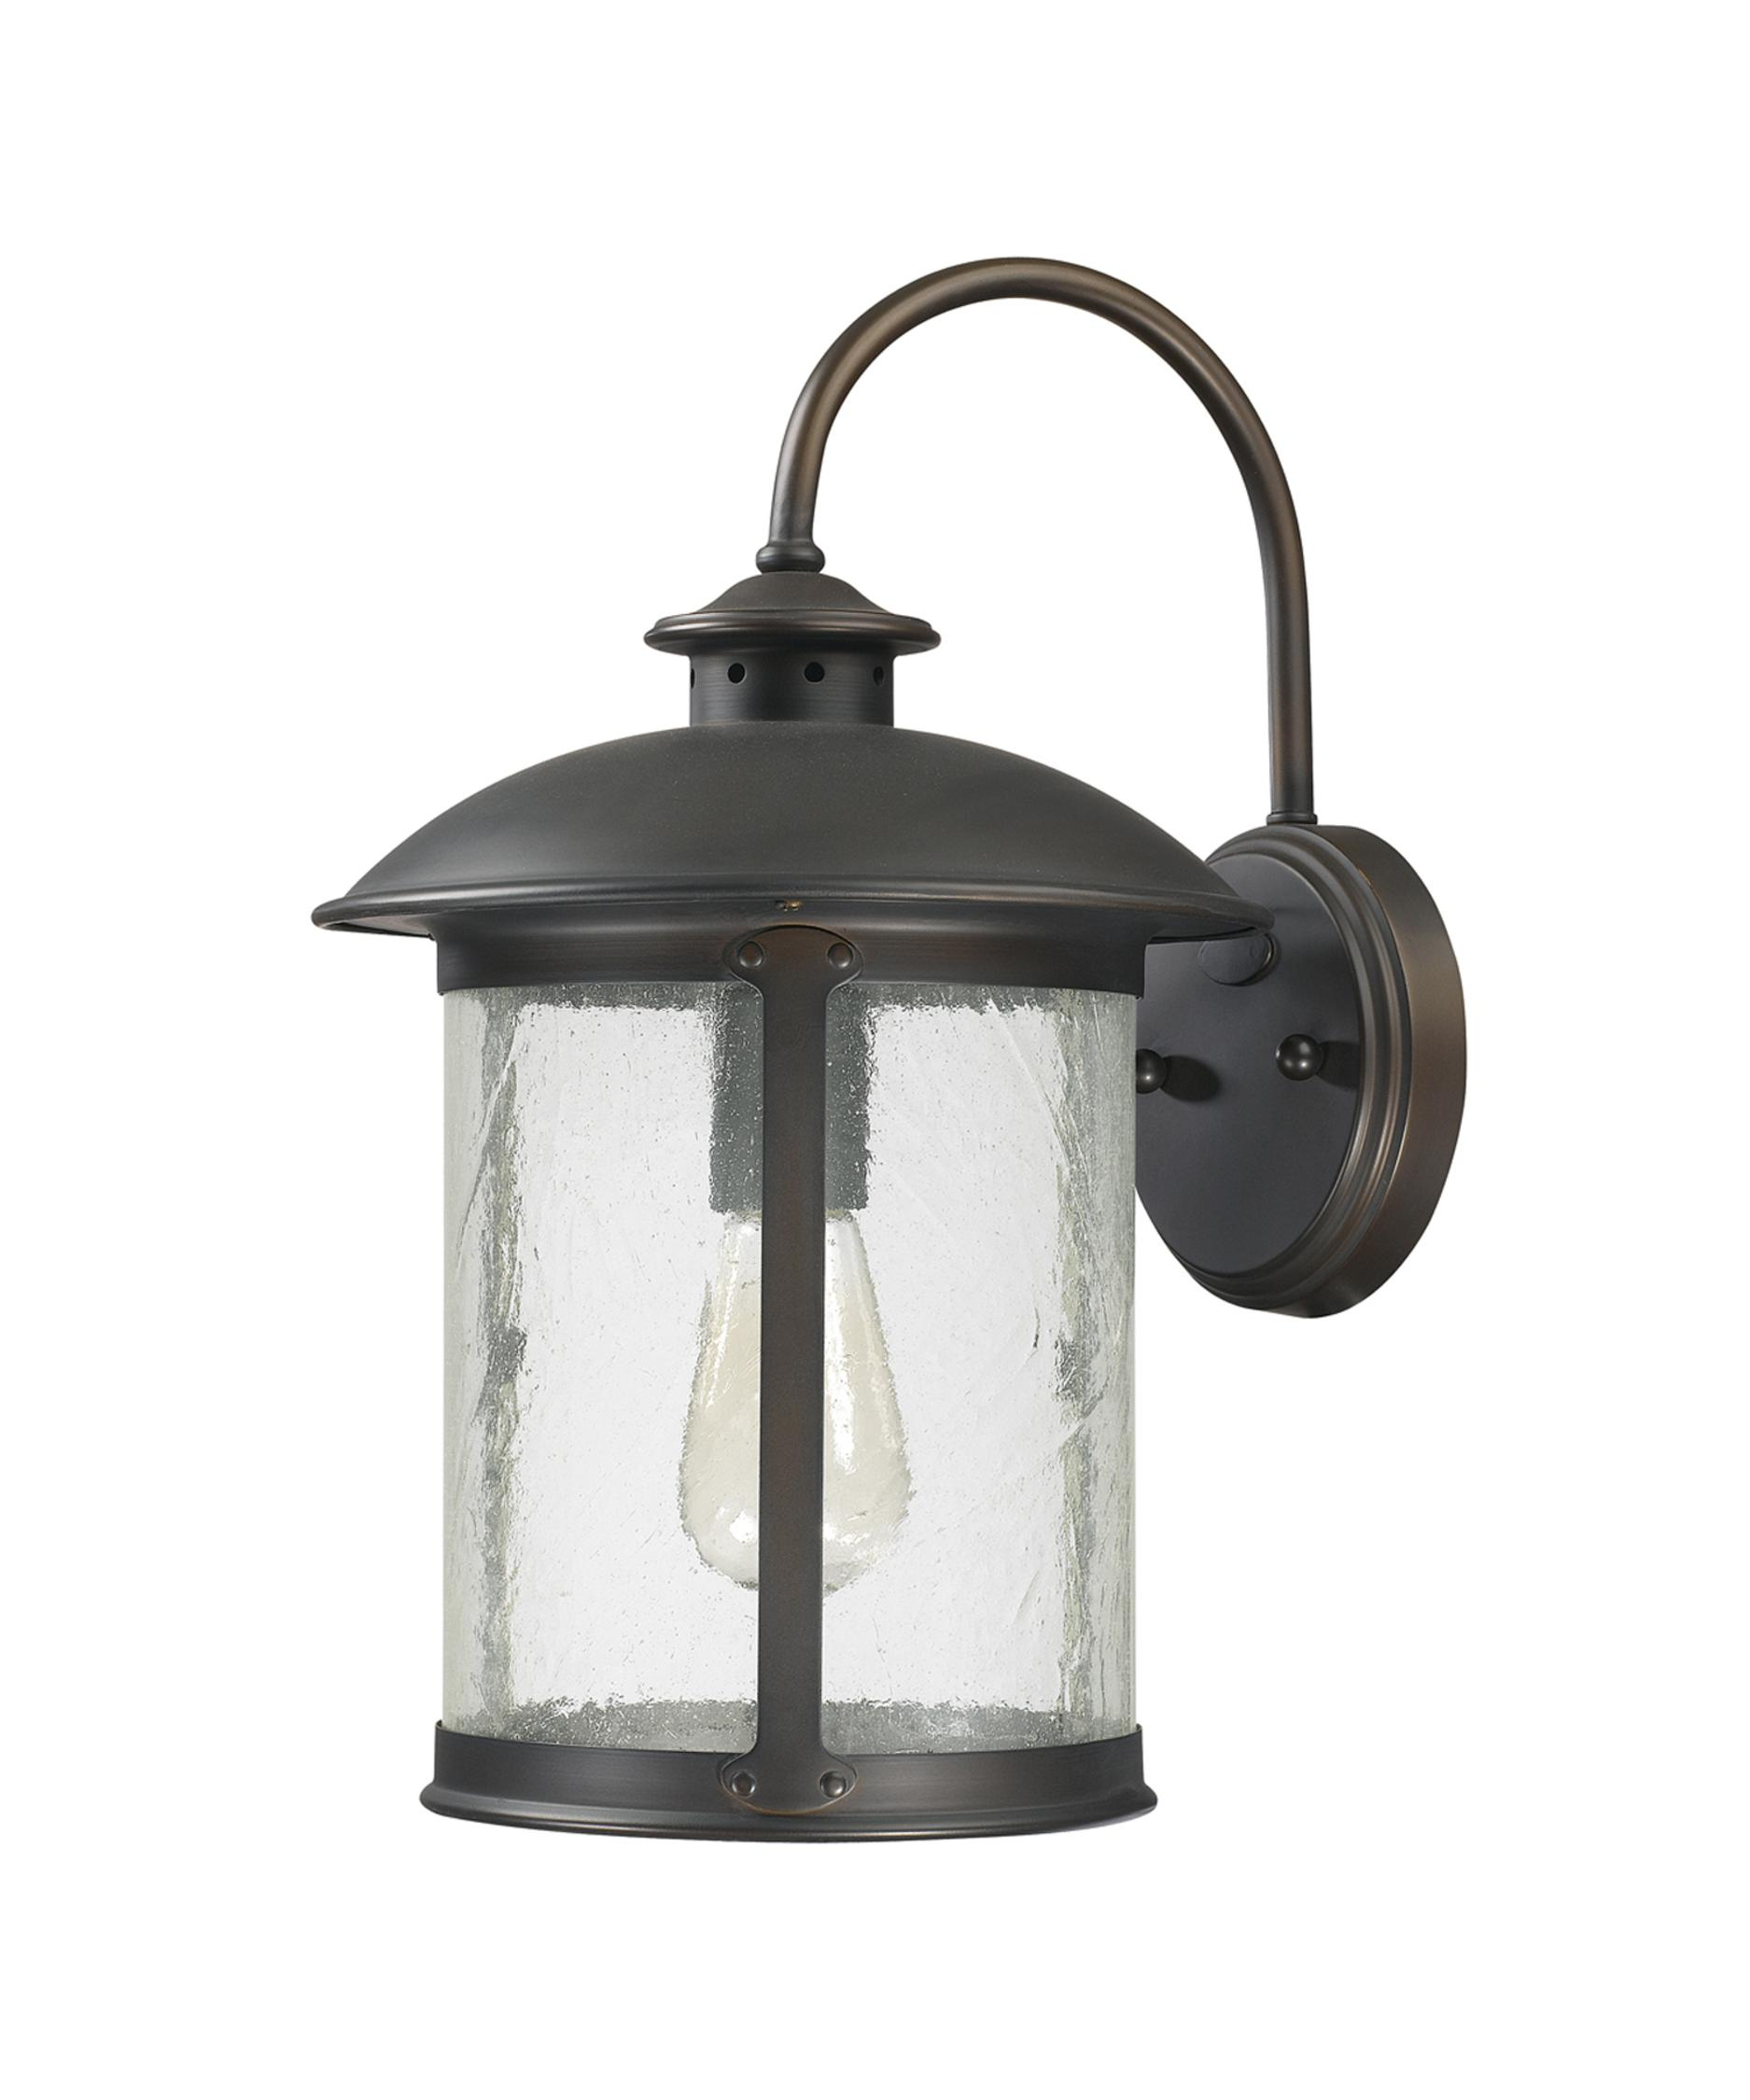 capital lighting dylan 10 inch wide 1 light outdoor wall light capitol lighting - Capital Lighting